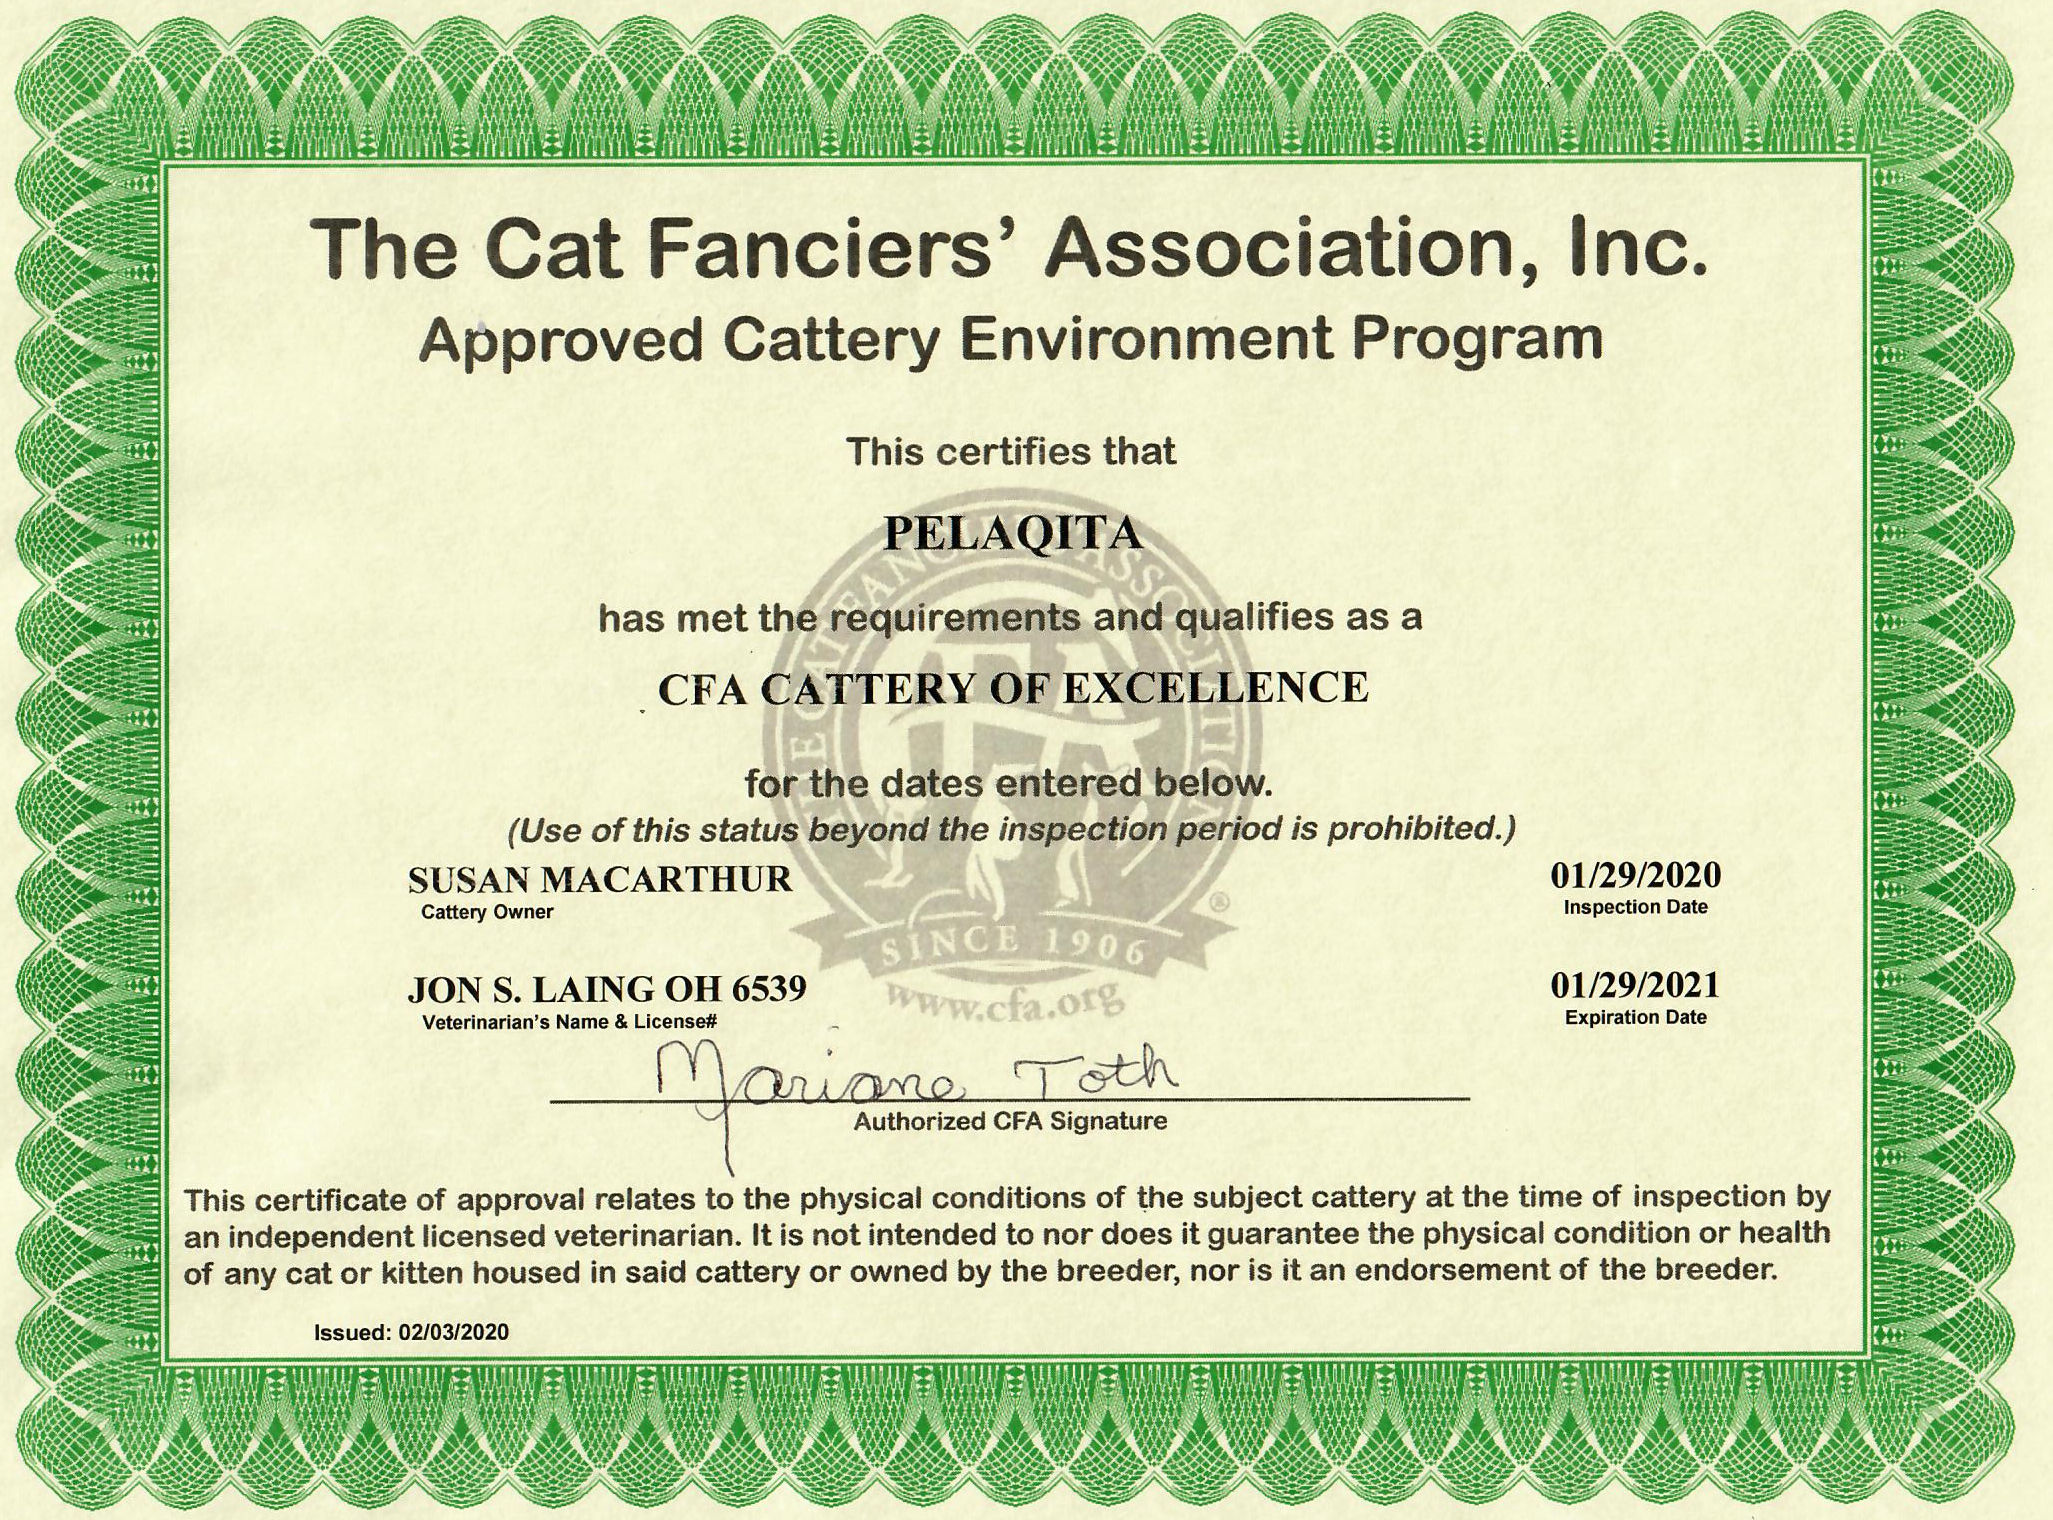 CFA Cattery of Excellence logo - January 29, 2020 through January 29, 2021